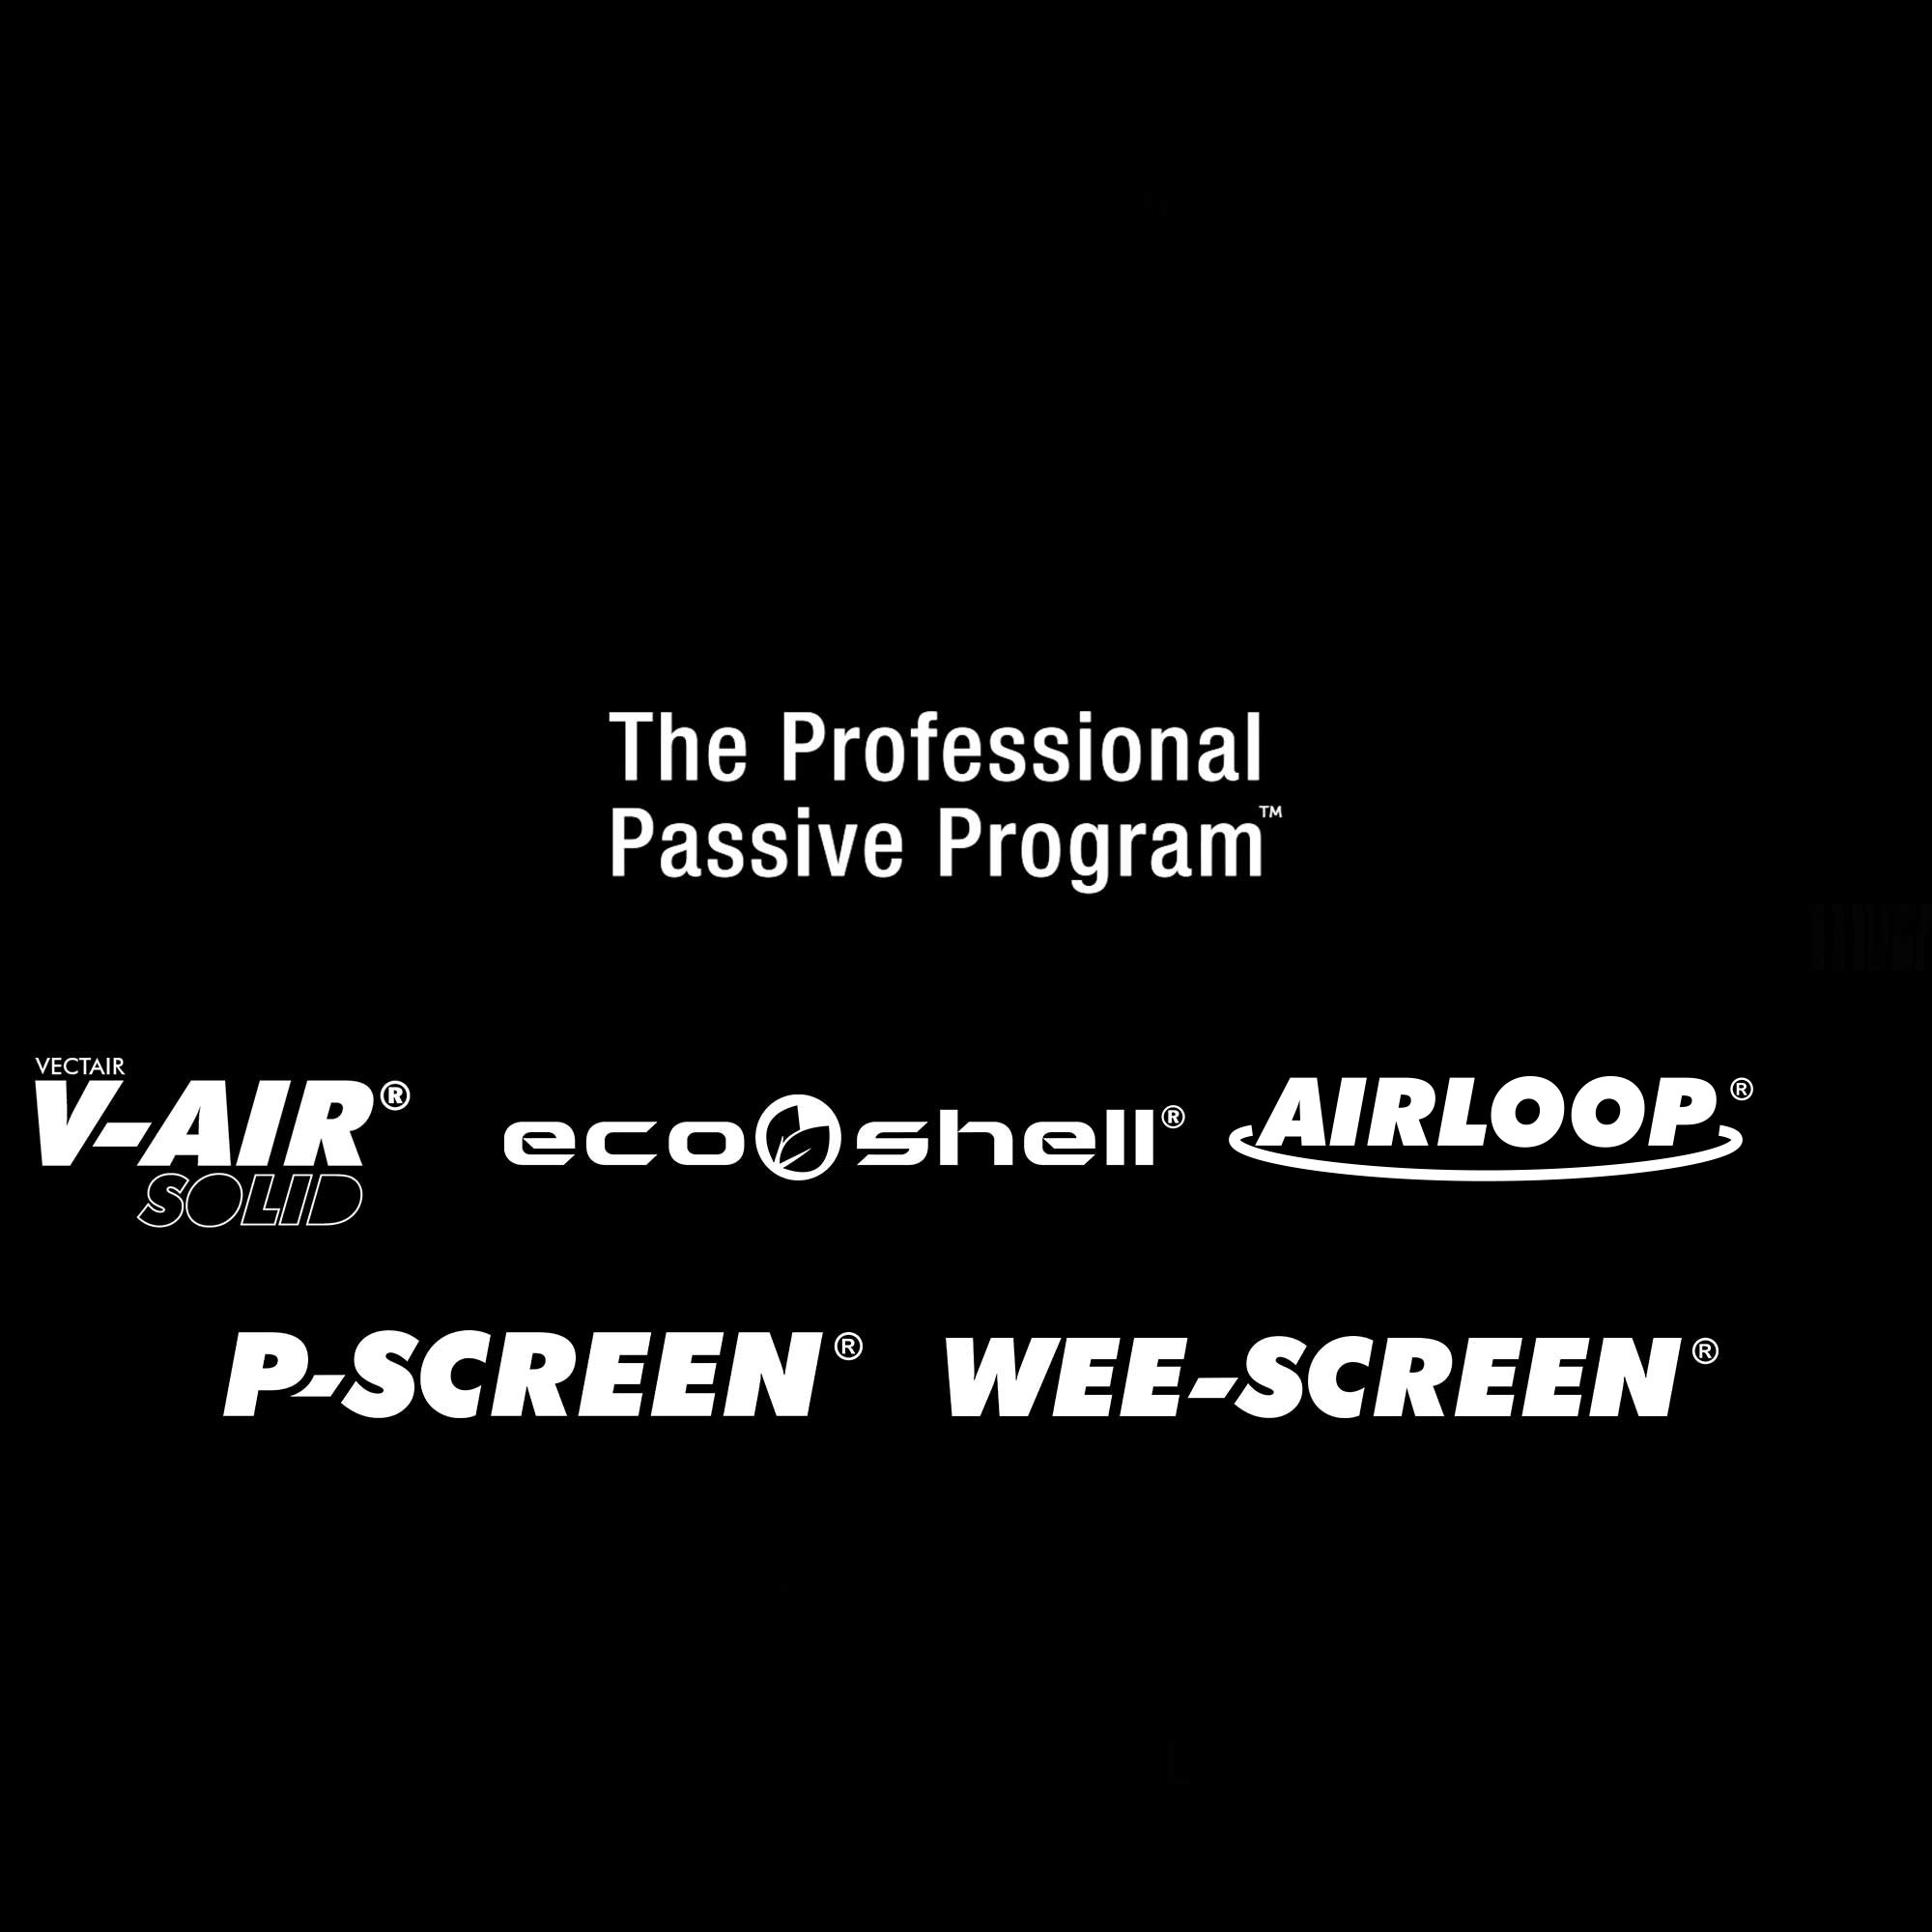 The Professional Passive Programme